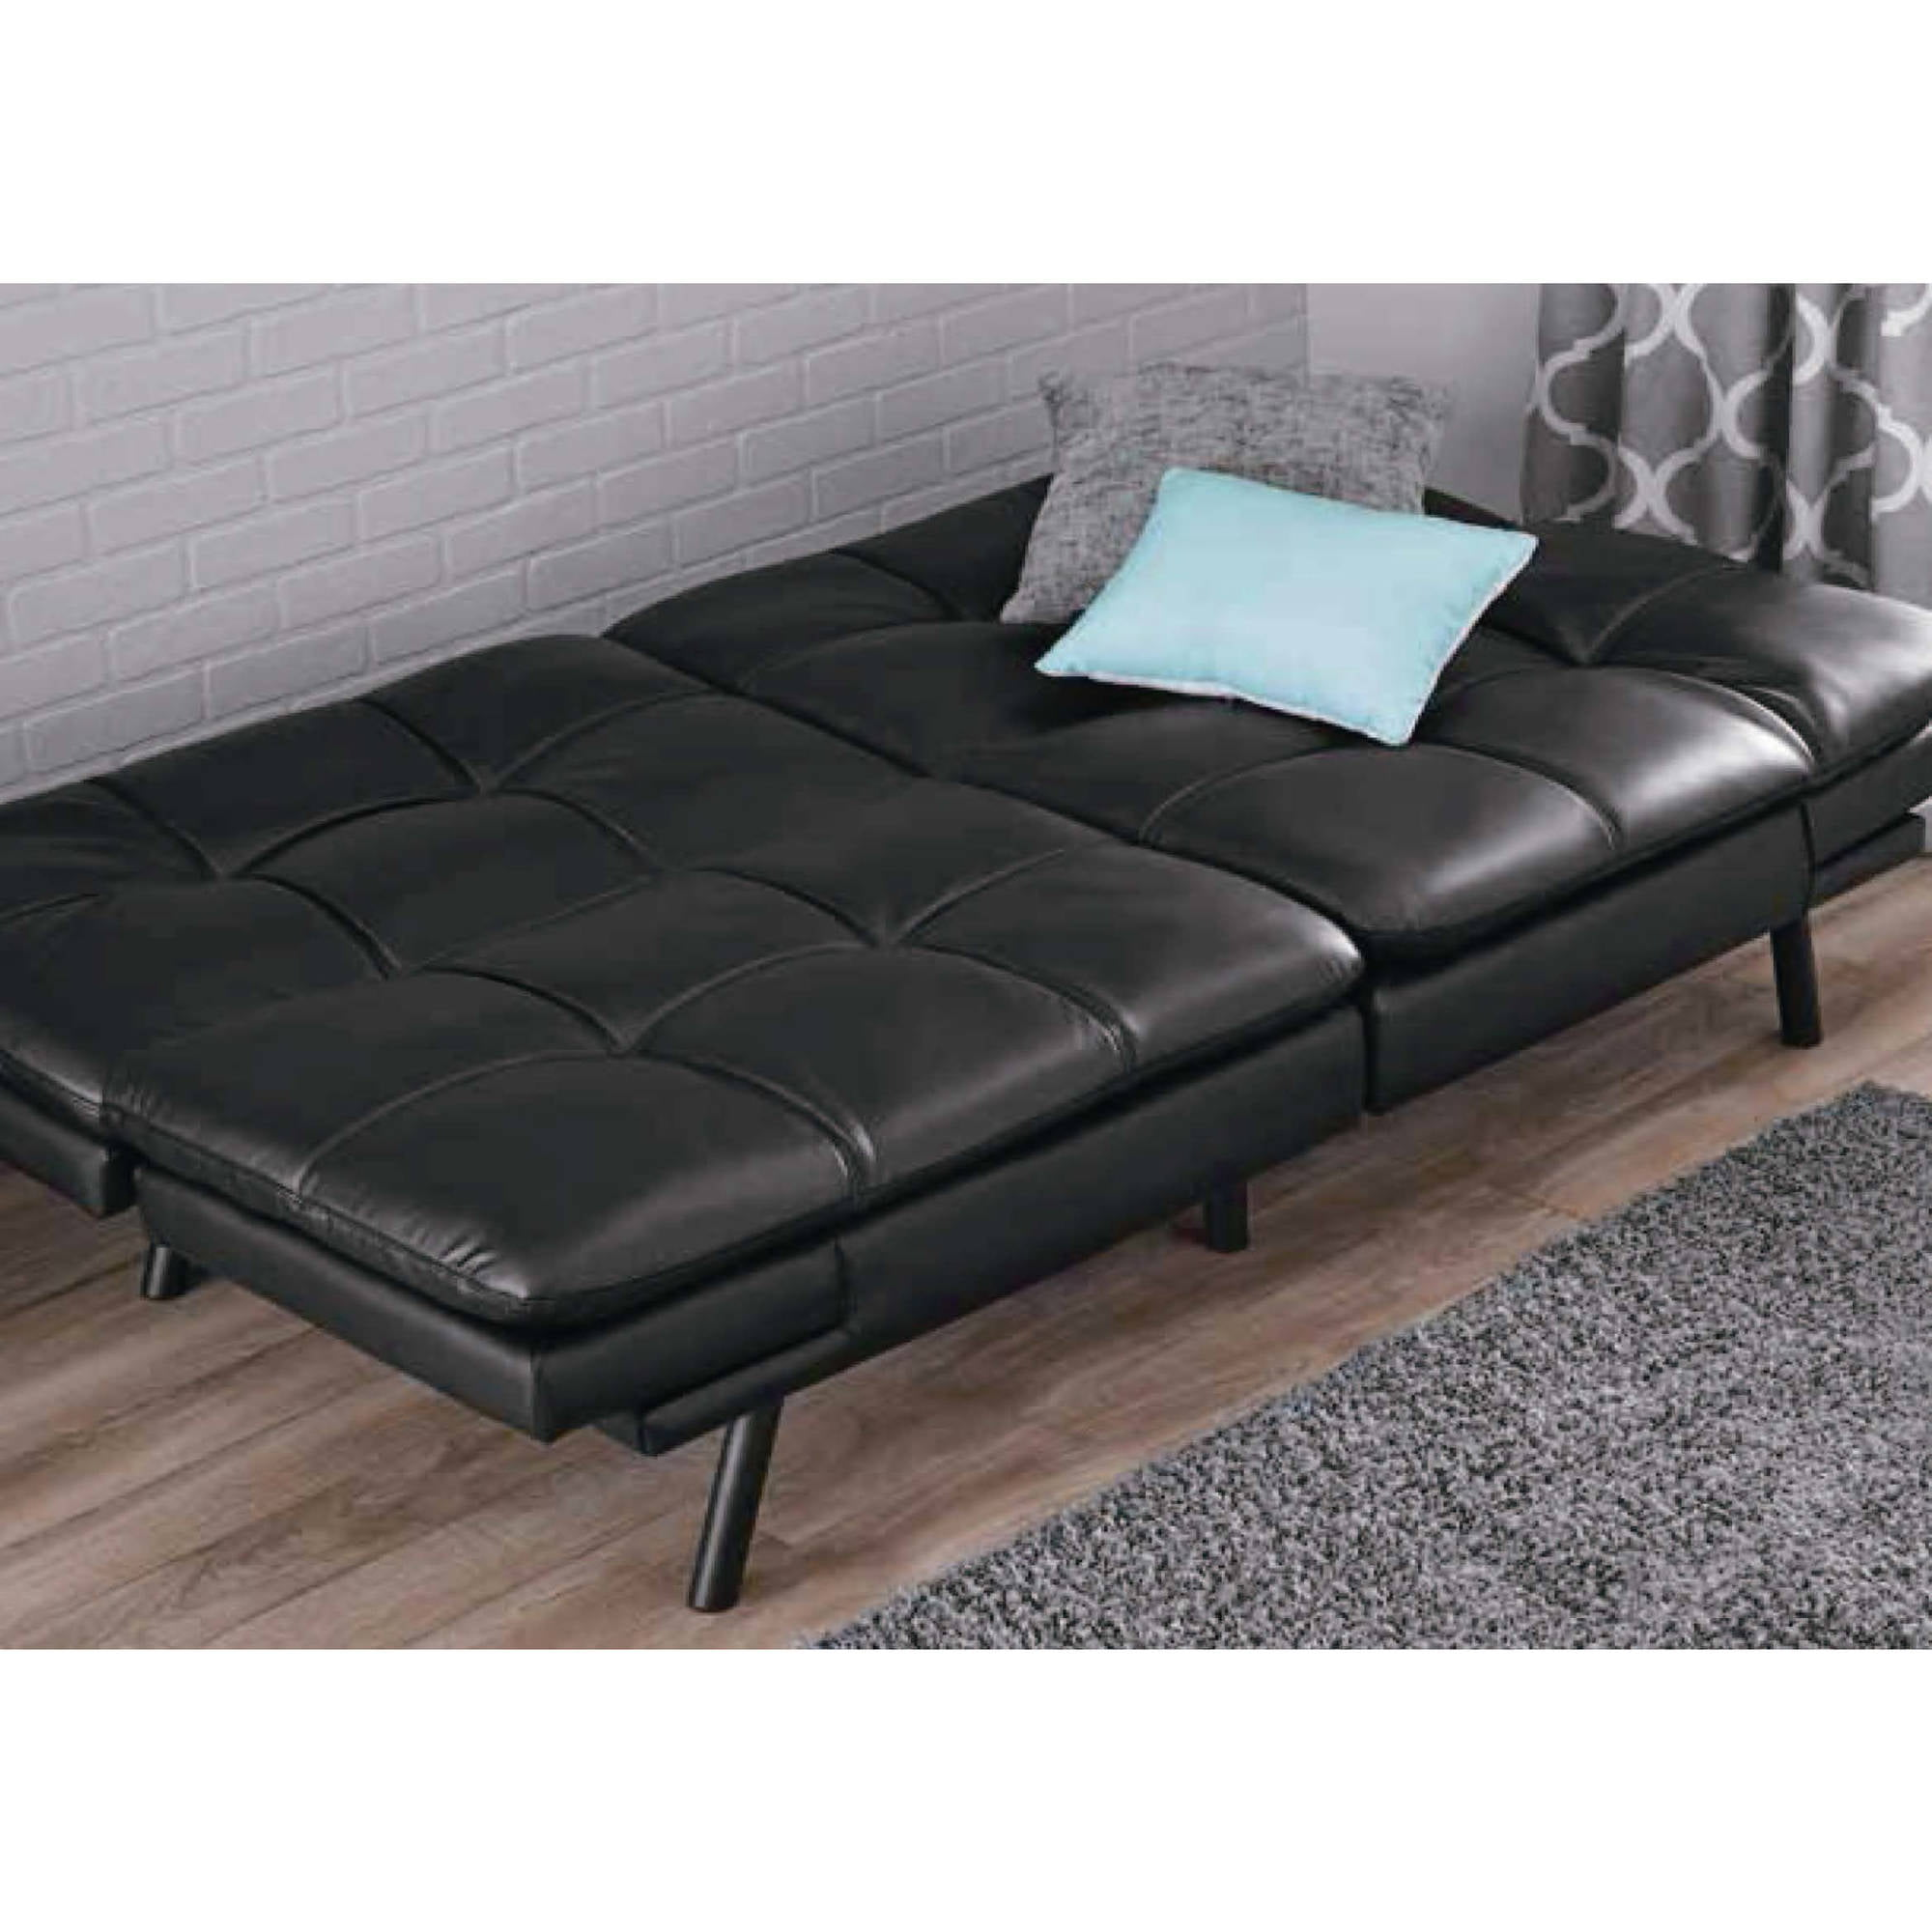 Leather Futon Couch Sleeper Sofa Love Seat Convertible Sectional Bed Chair  Black